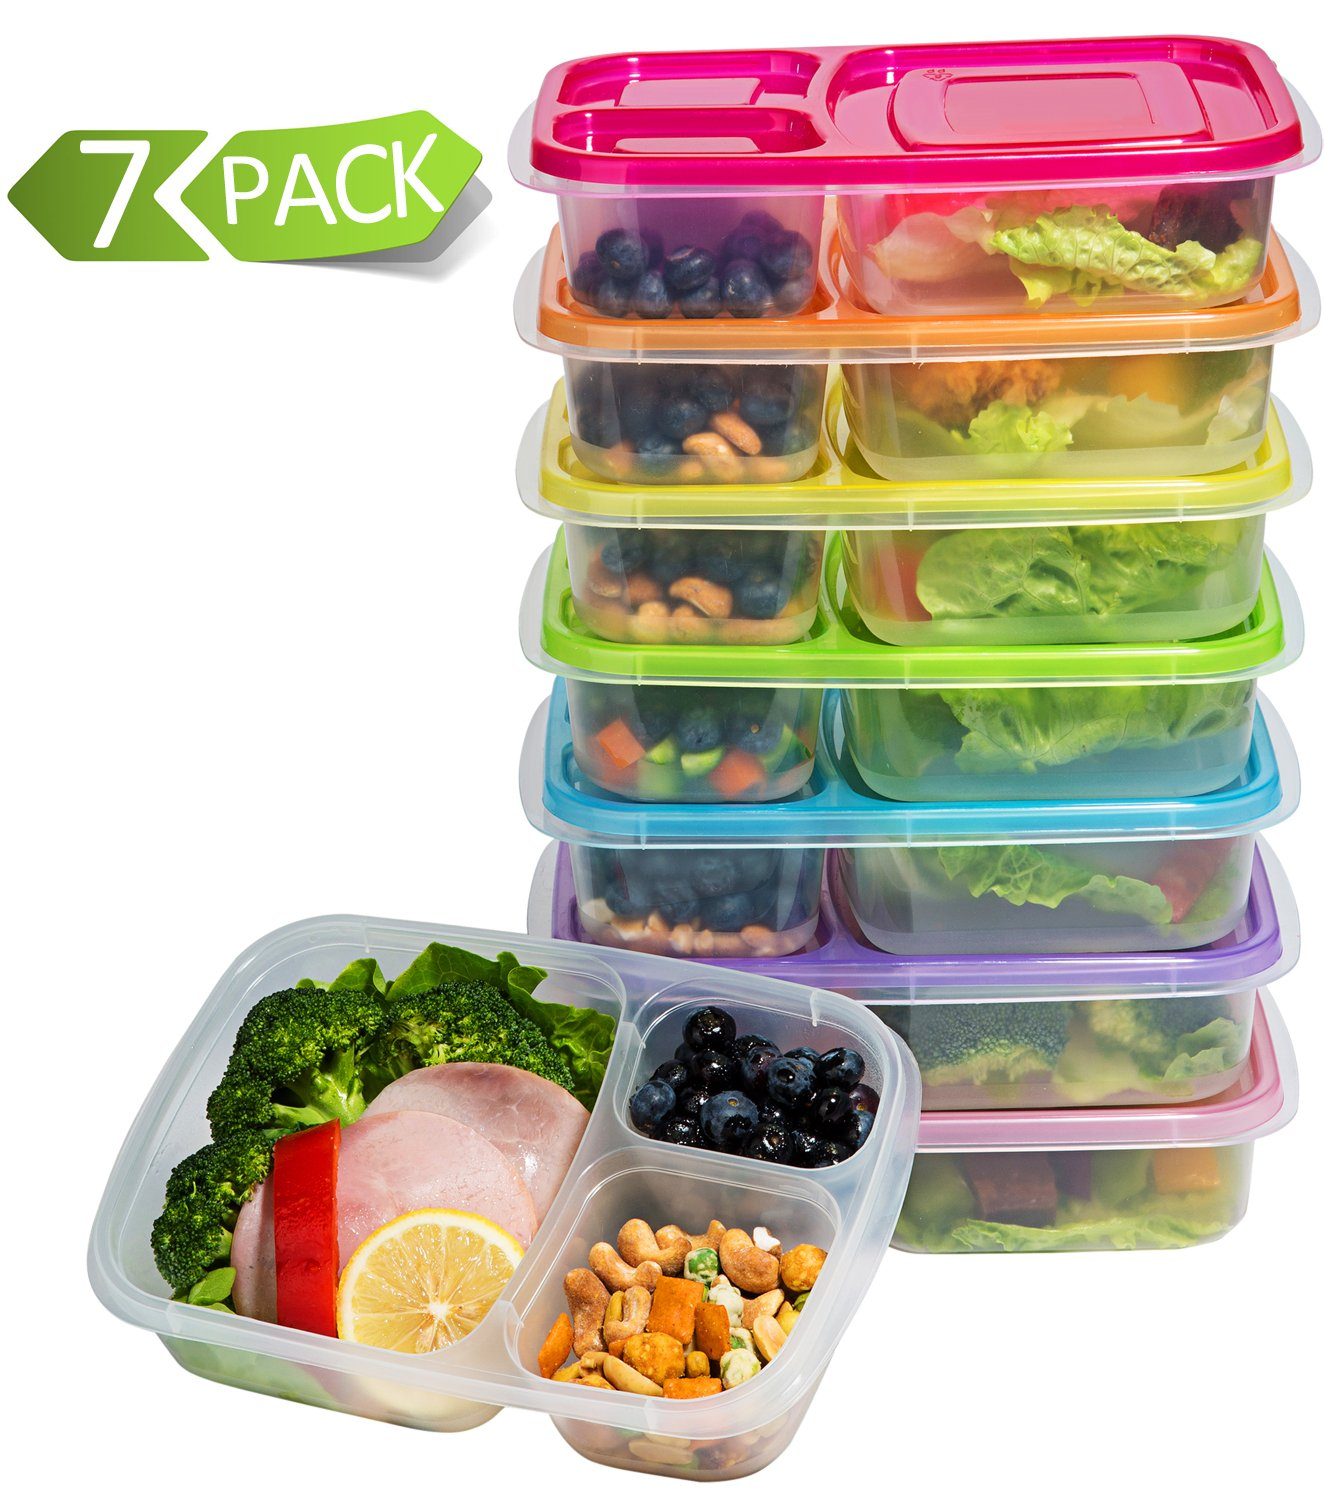 Kid Friendly Food Storage Containers